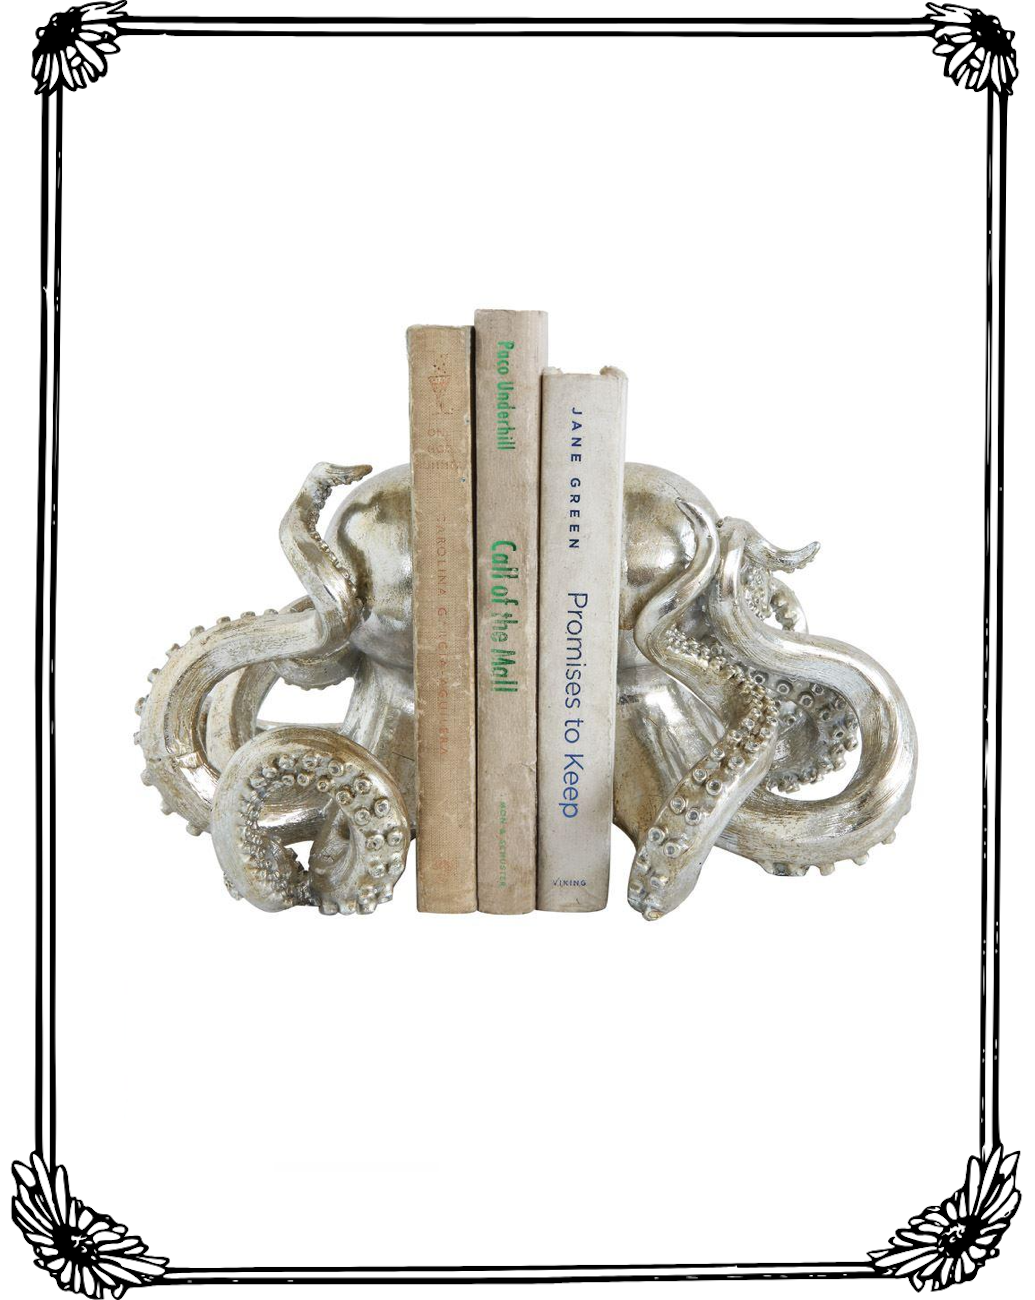 octopus-bookends.png